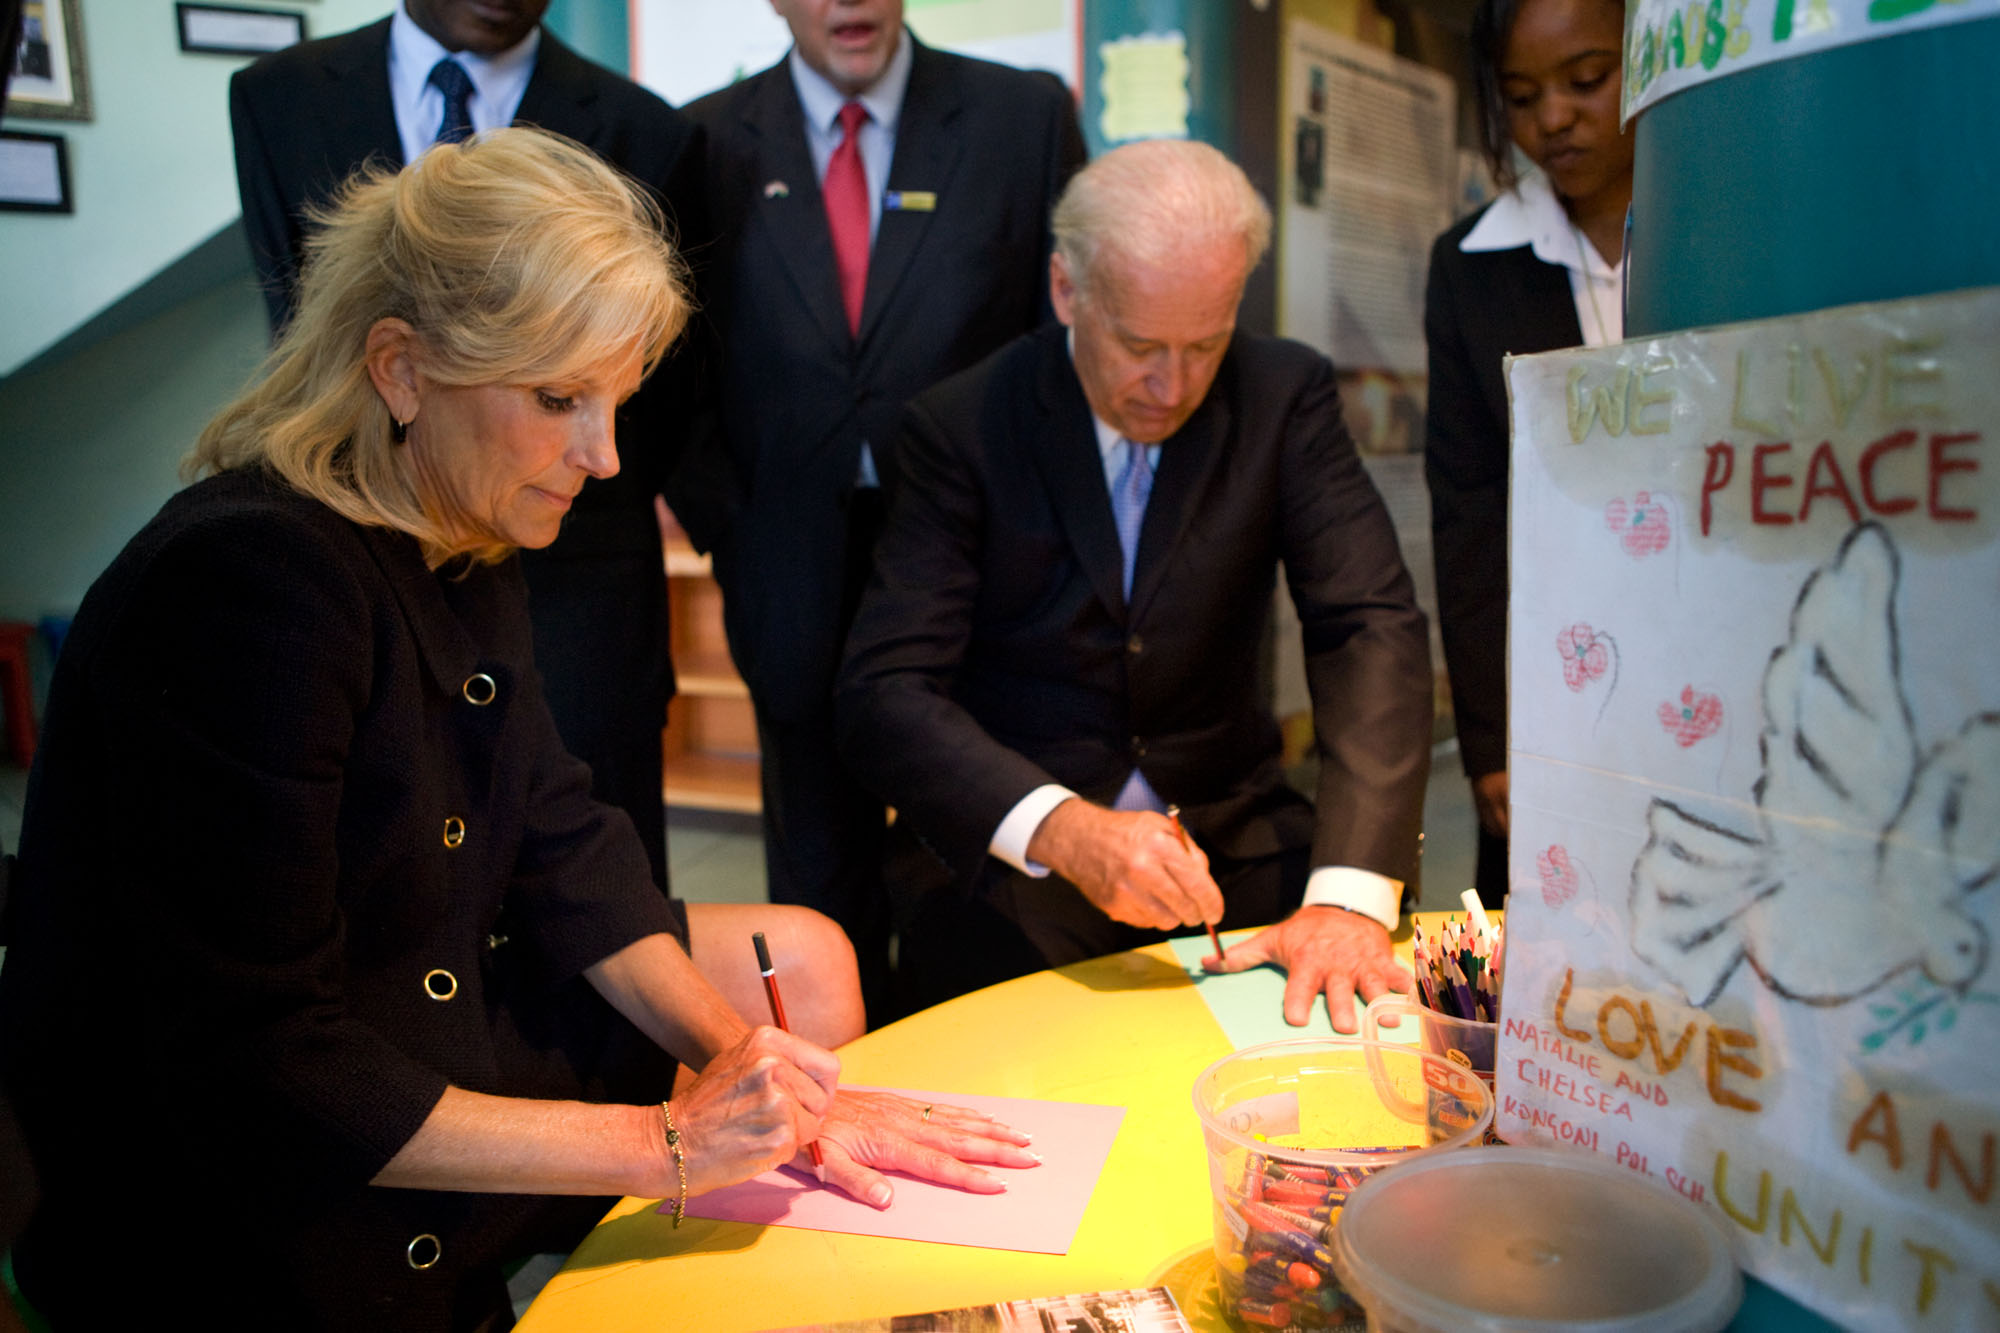 Vice President Joe Biden and Dr. Jill Biden Trace Their Hands During a Visit to the August 7 Memorial Park